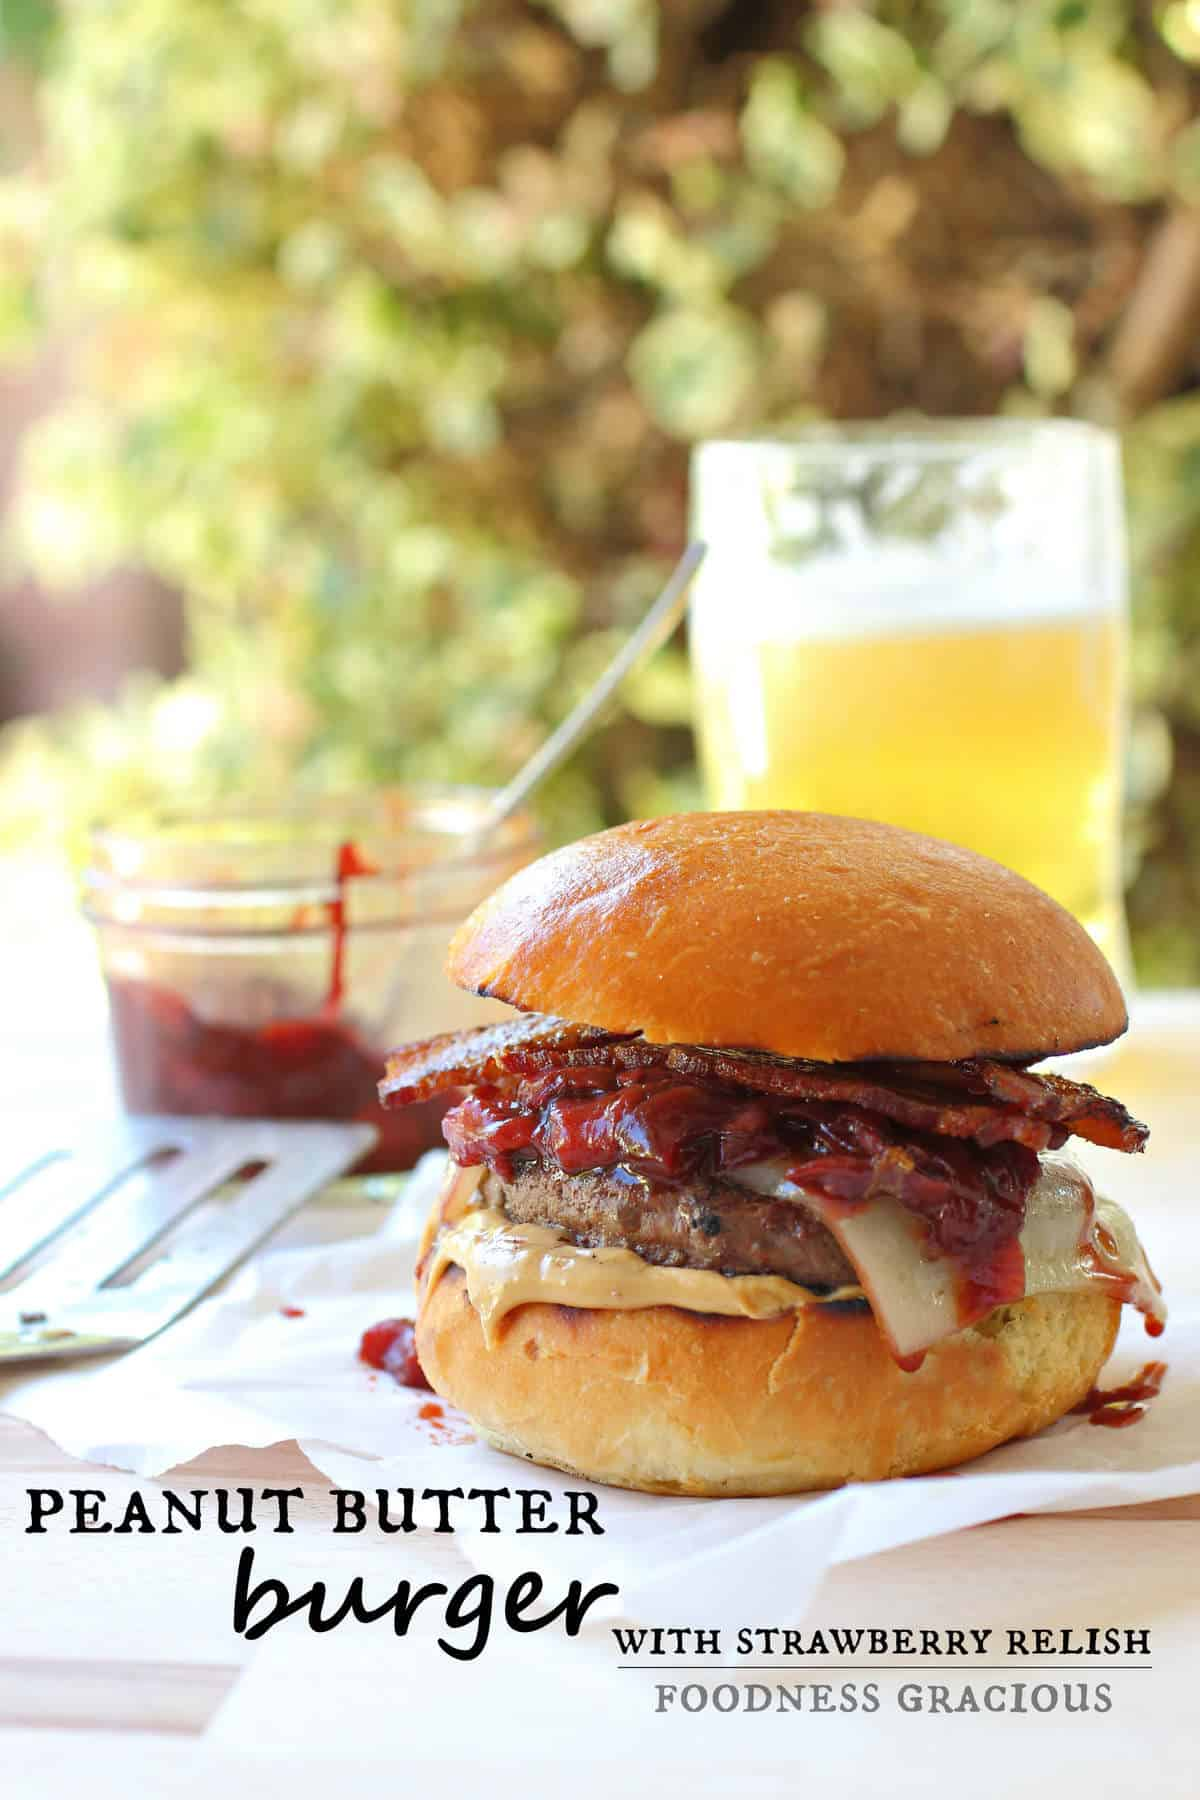 Peanut Butter Burger and Strawberry Relish